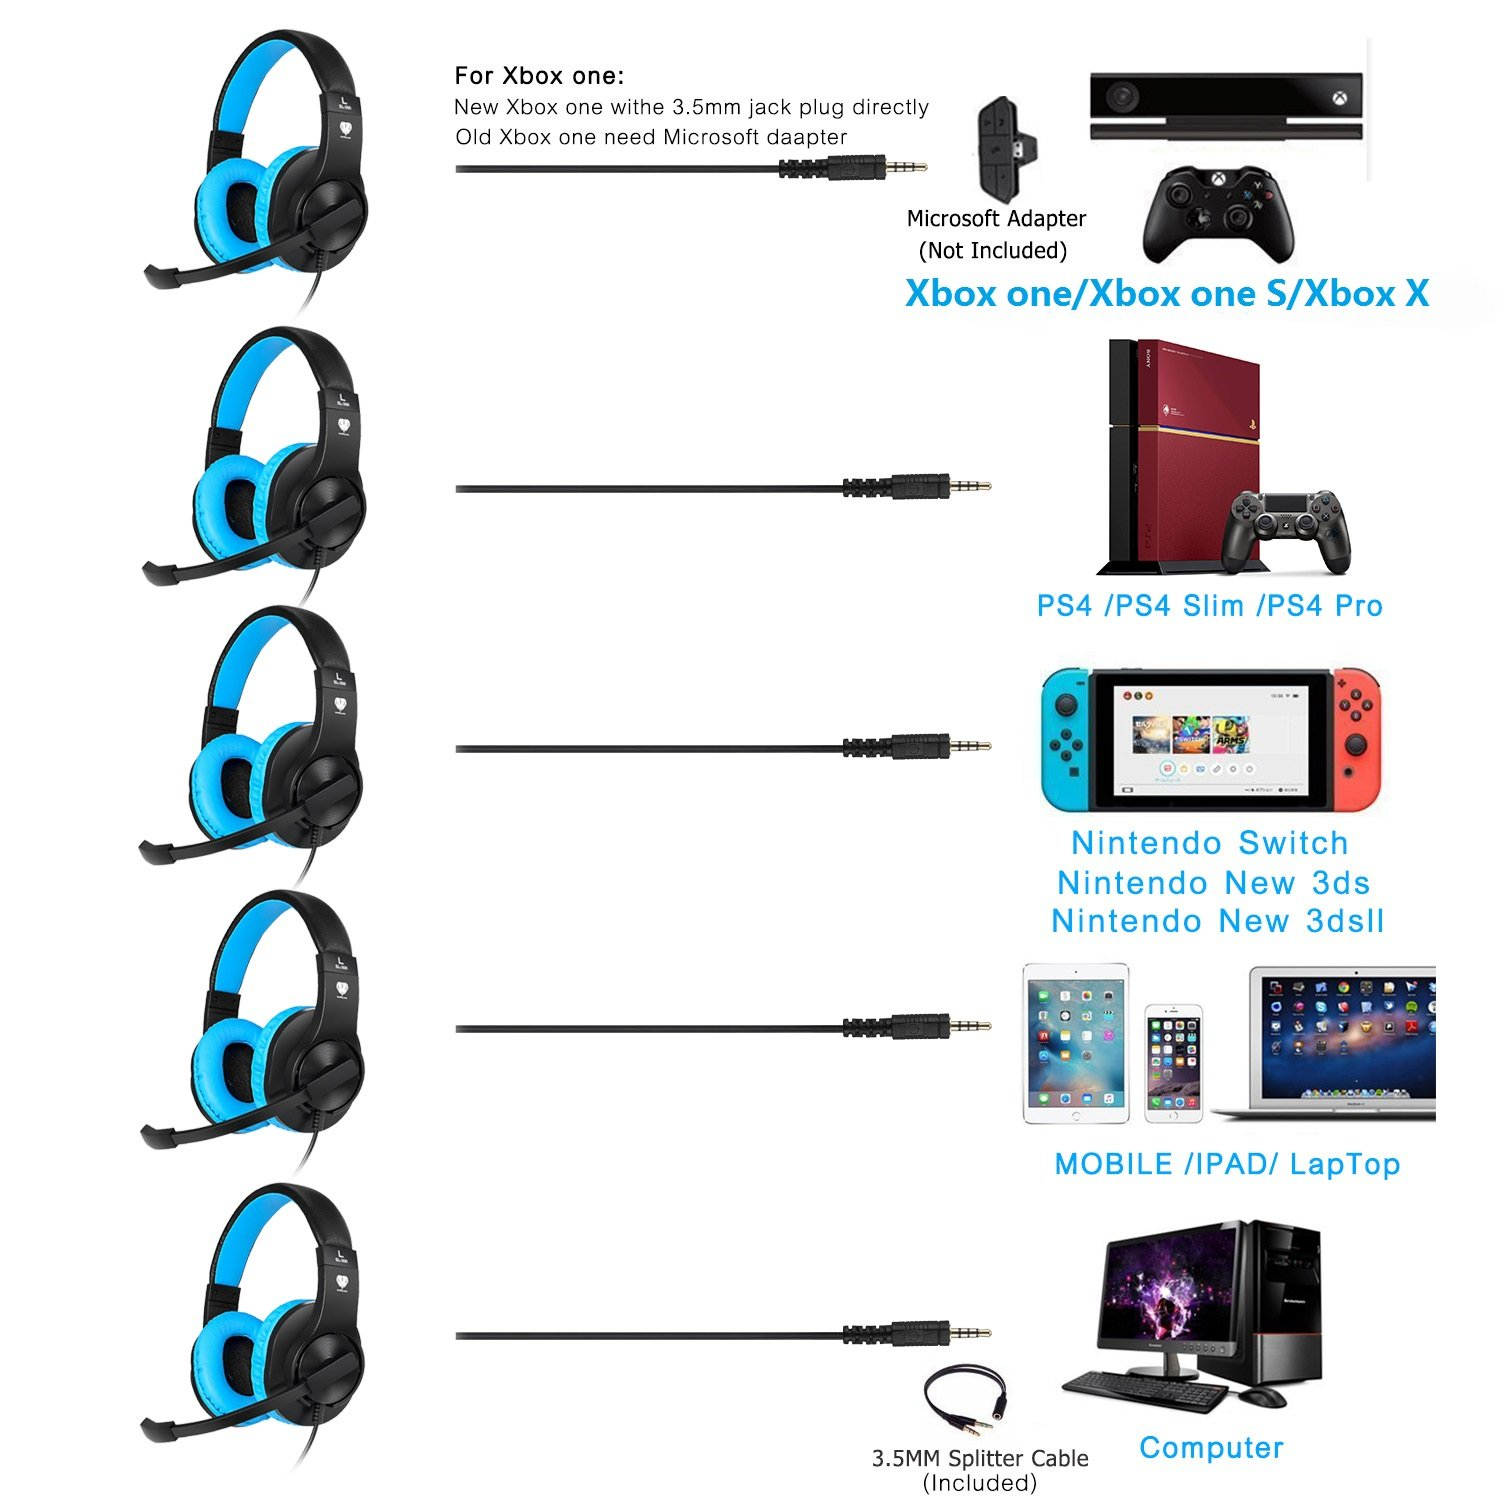 DIWUER Stereo Wired Gaming Headset for PS4 Xbox One 3.5mm Bass Over-Ear Headphones with Mic Noise Isolation for Laptop PC Mac iPad Phones (Black Blue) by DIWUER (Image #4)